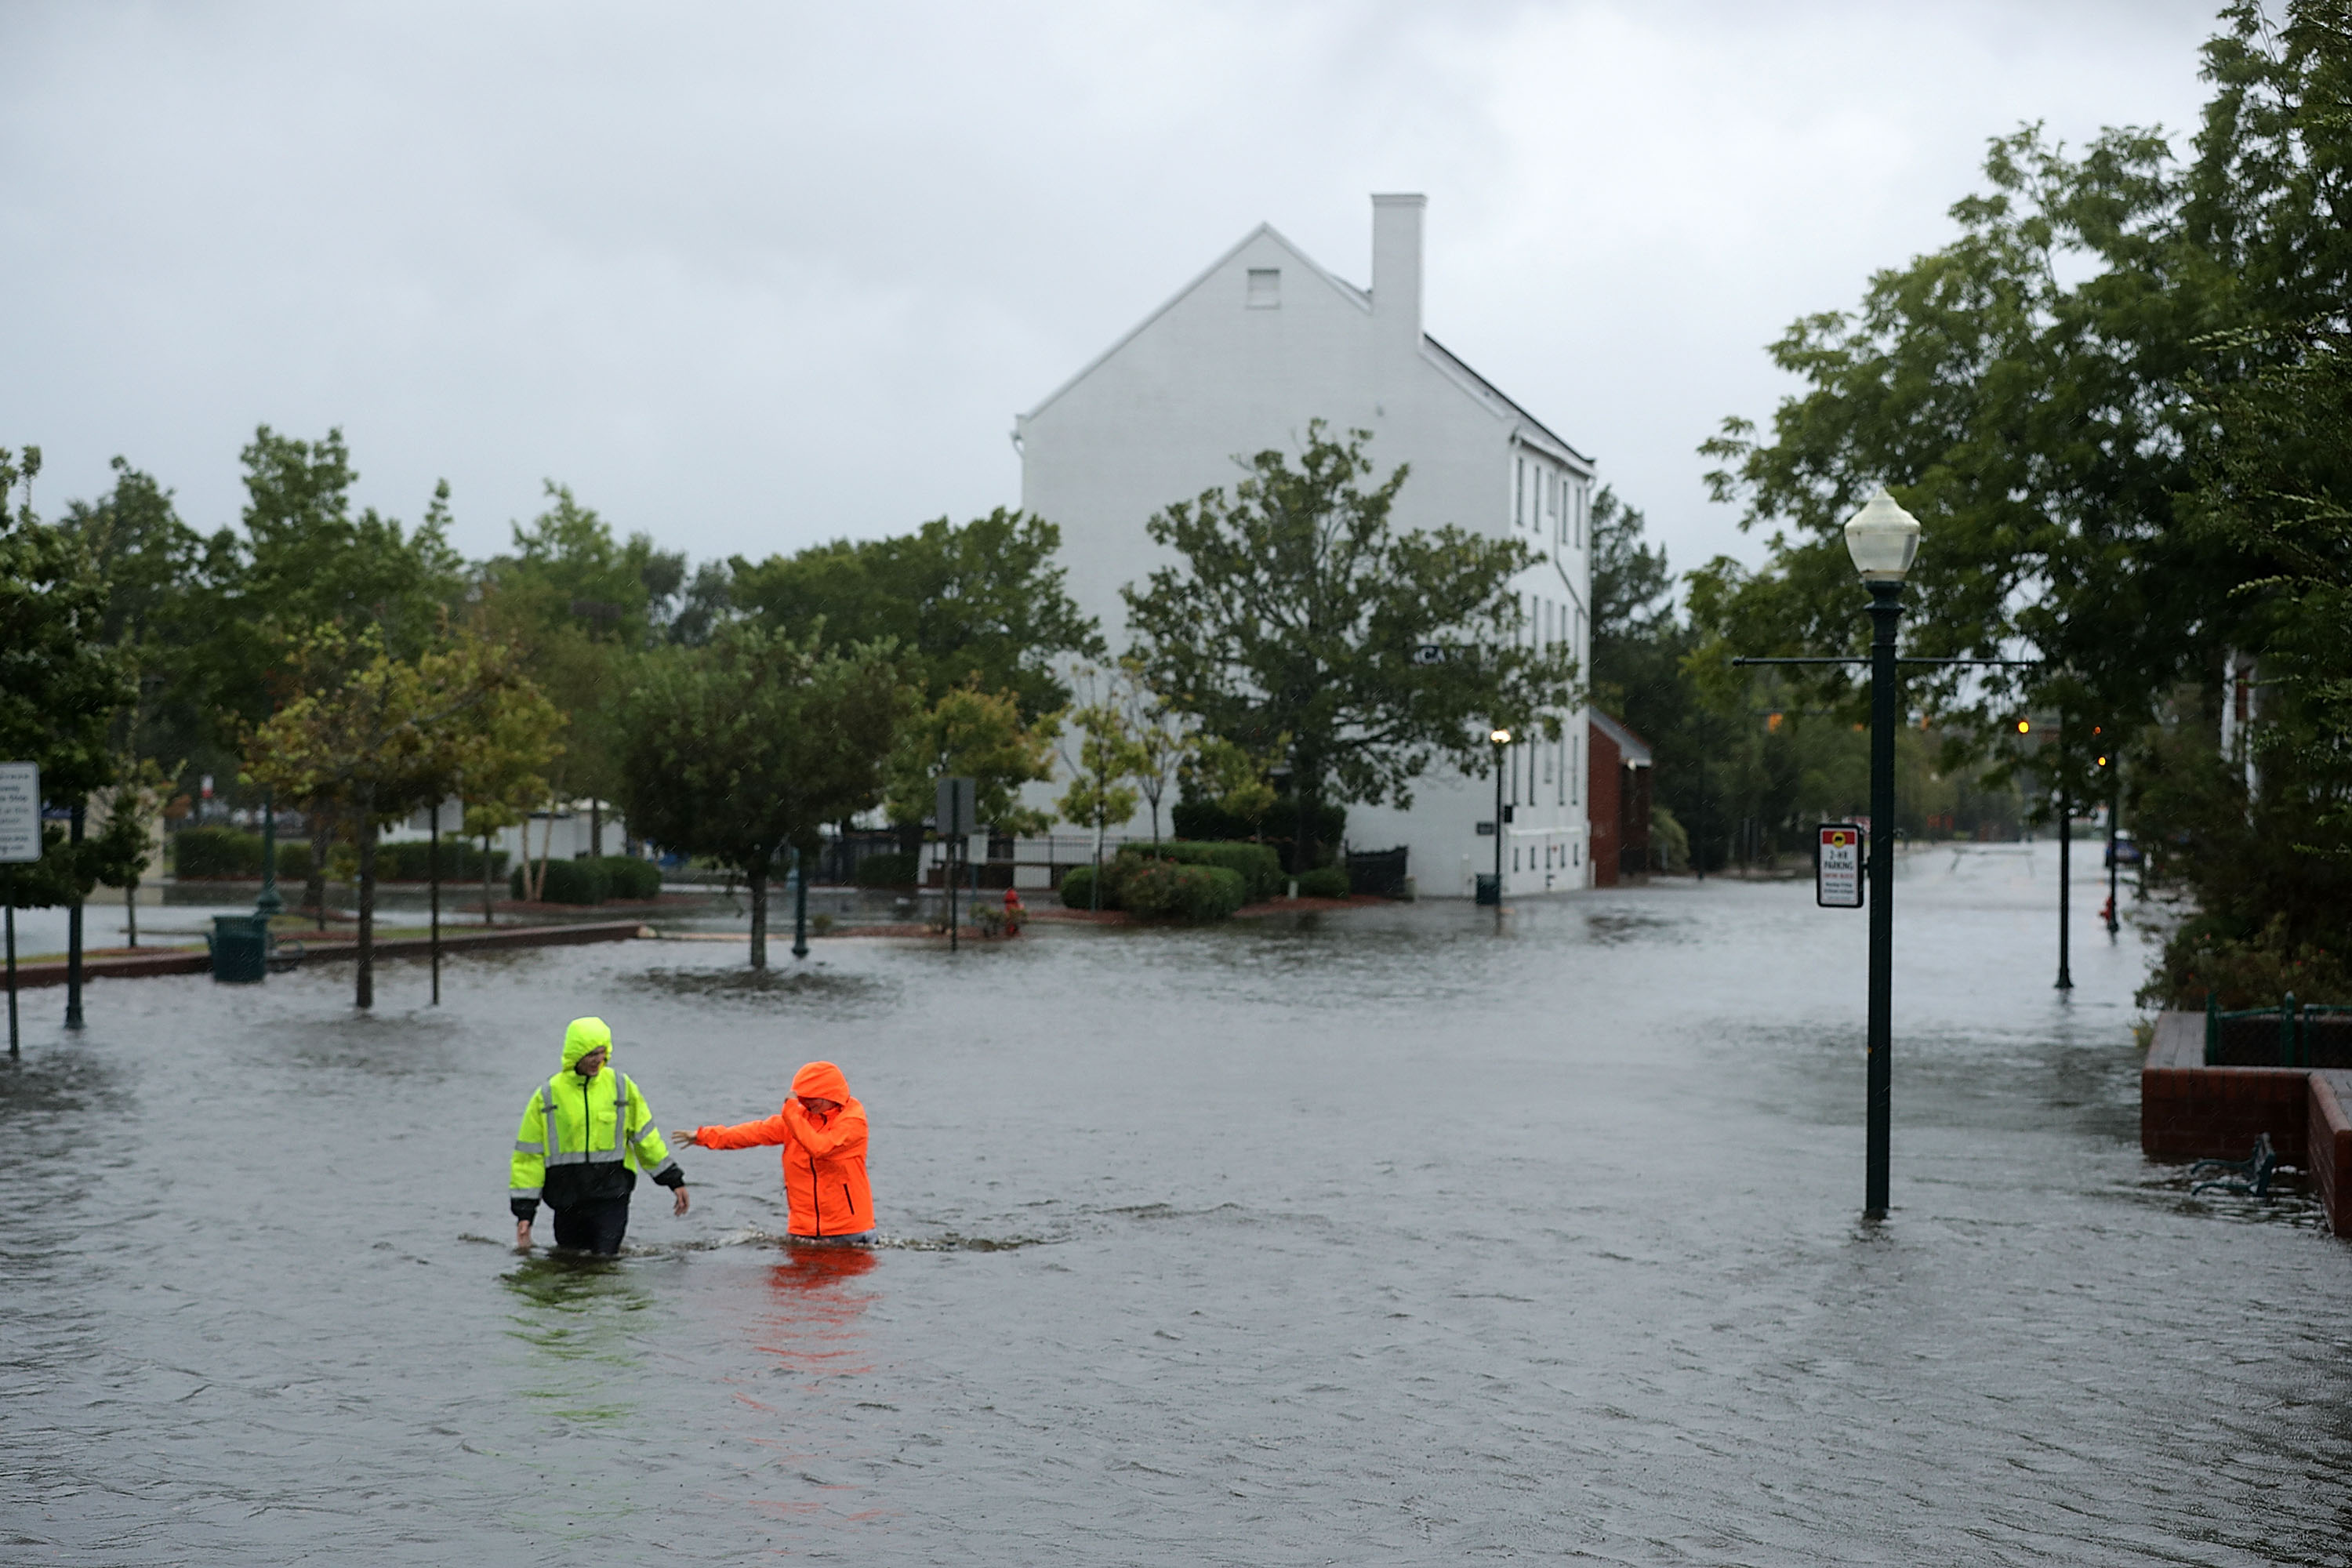 Residents walk in flooded streets as the Neuse River floods its banks during Hurricane Florence September 13, 2018 in New Bern, North Carolina. Coastal cities in North Carolina, South Carolina and Virginia are under evacuation orders as the Category 2 hurricane approaches the United States.